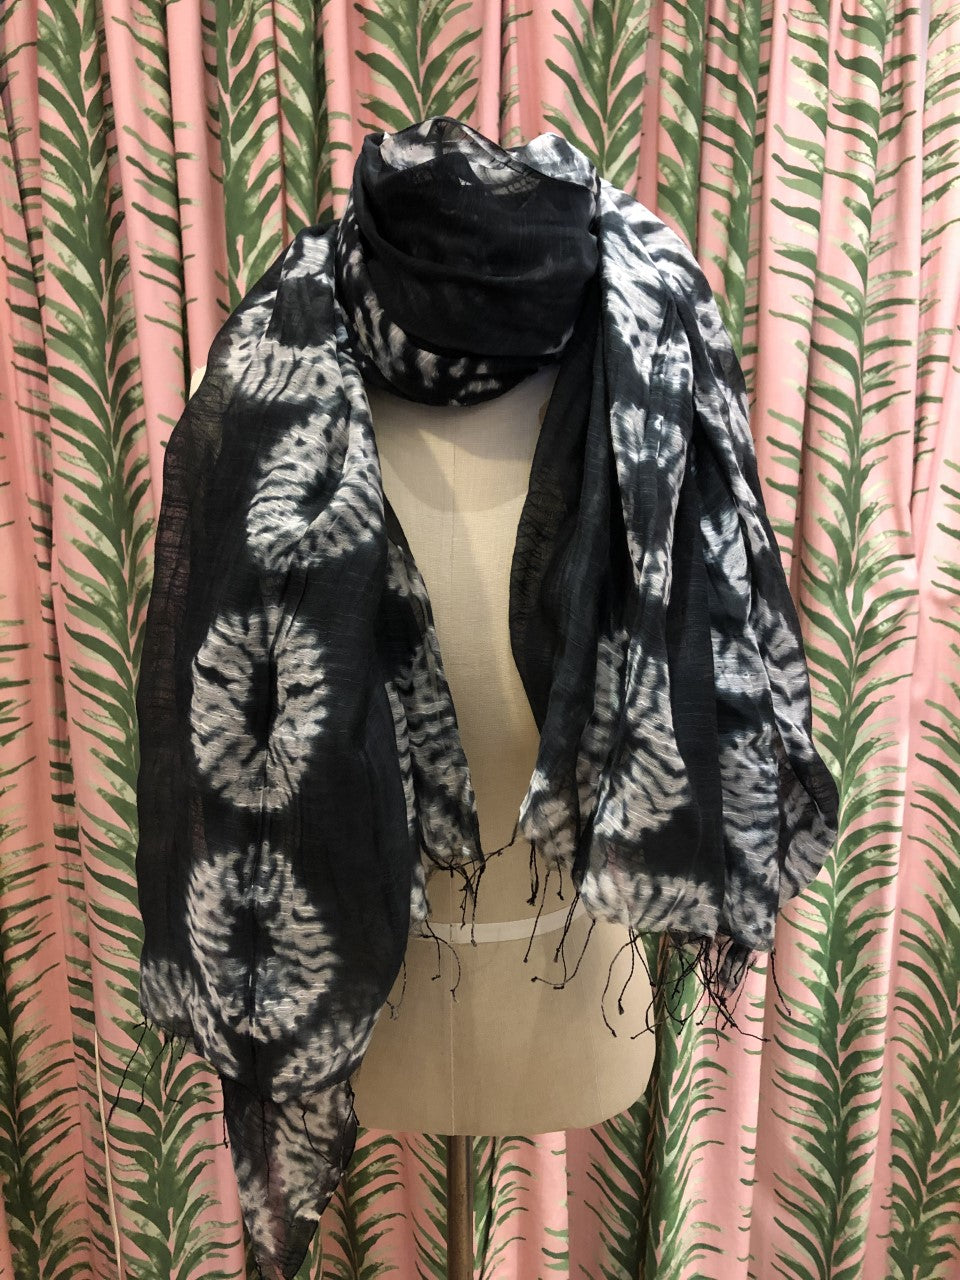 Shibori Tie Dye Silk Scarf in Black Pattern #4